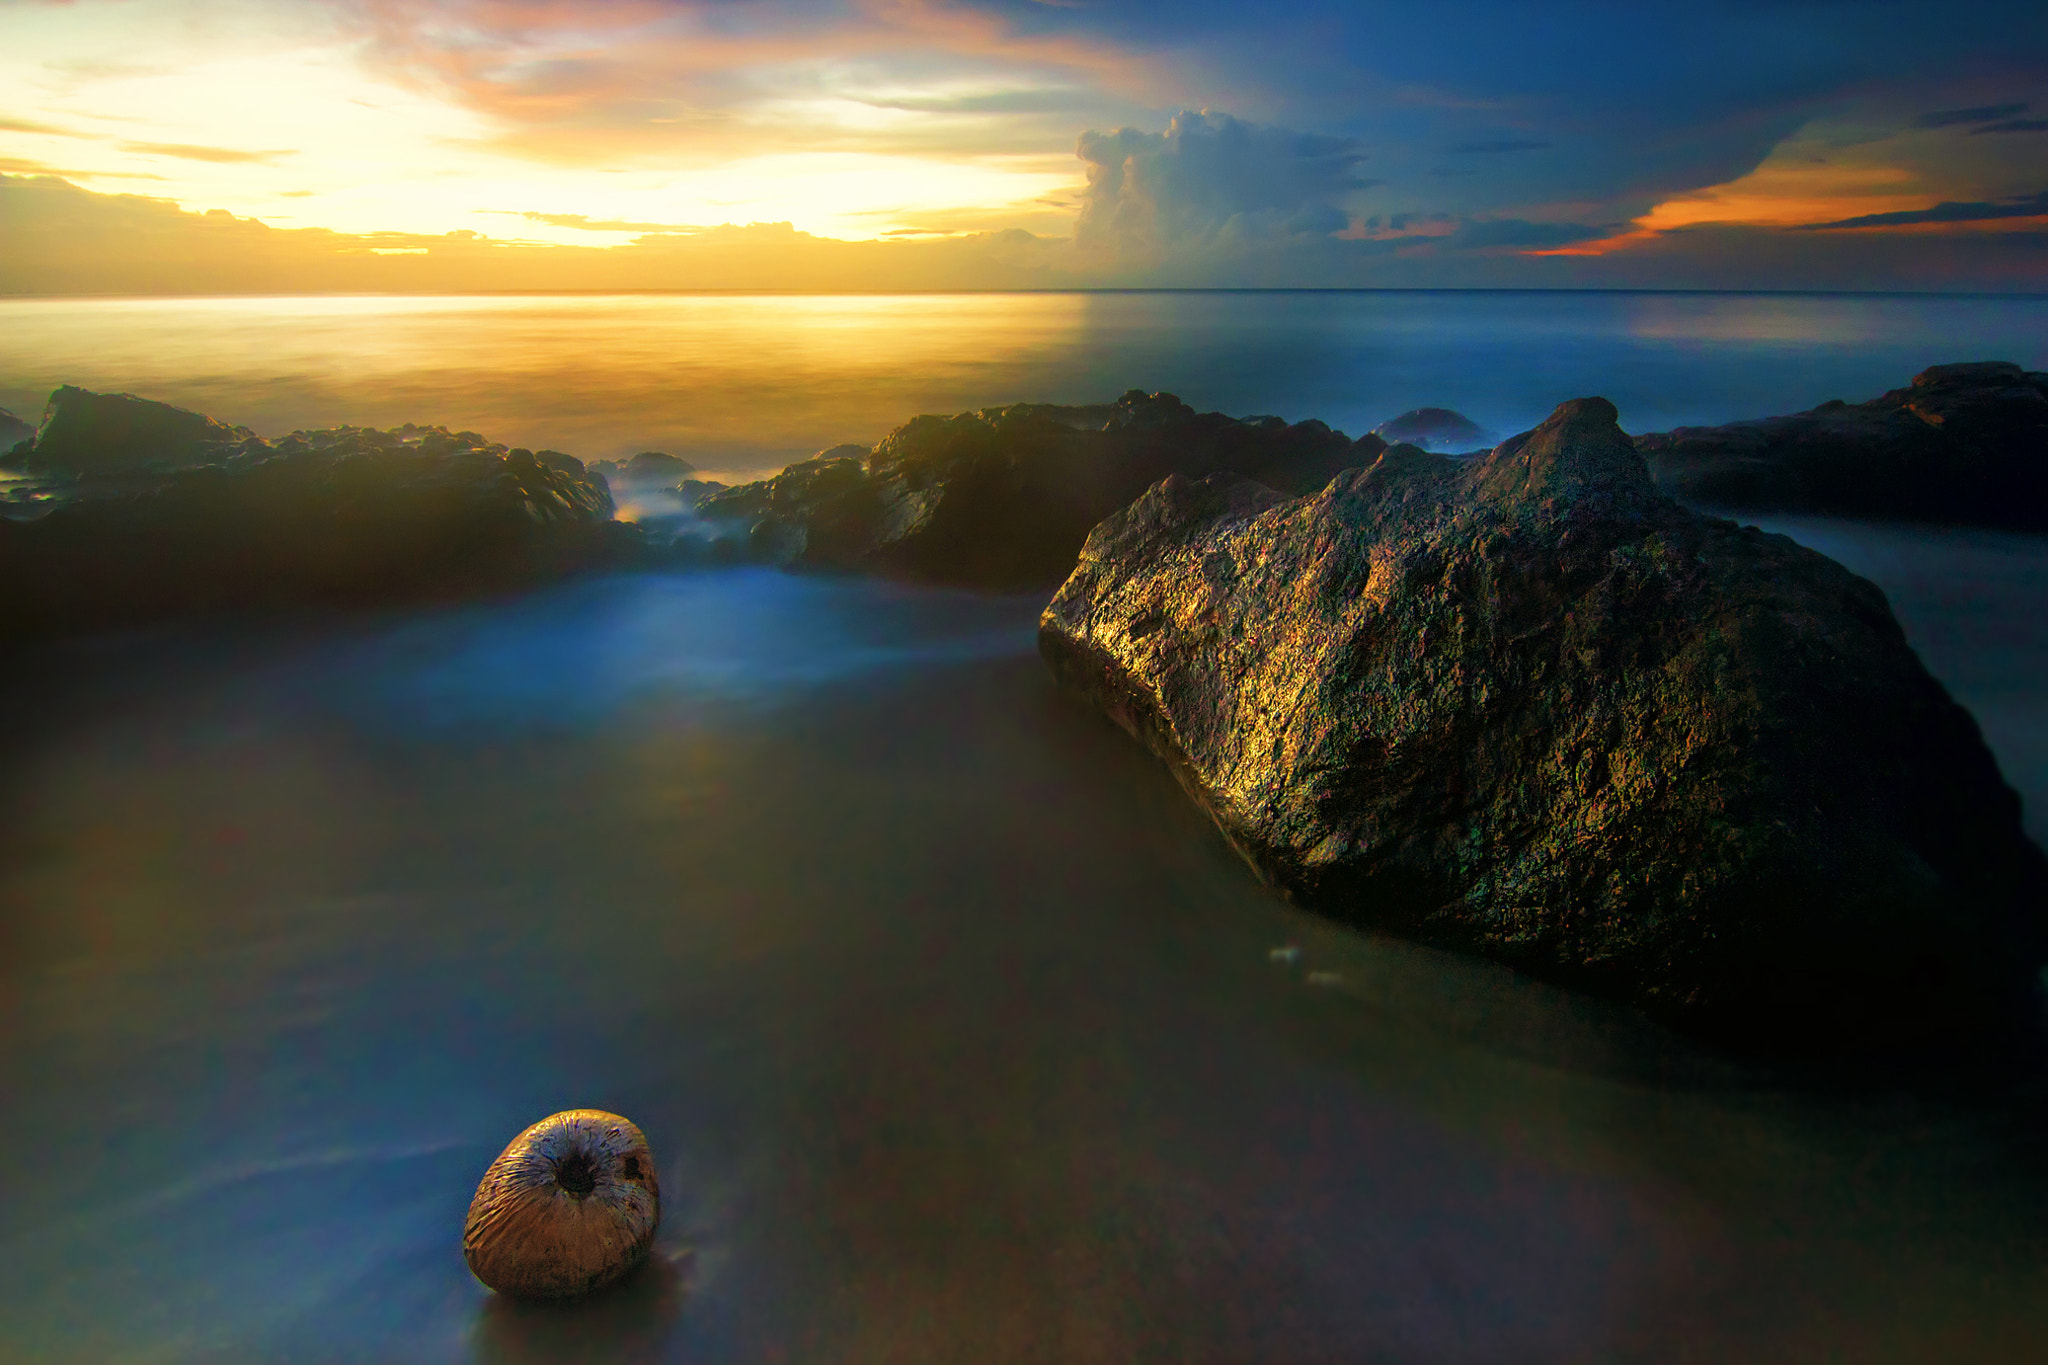 Photograph Coconut in Sunset by Eep Ependi on 500px